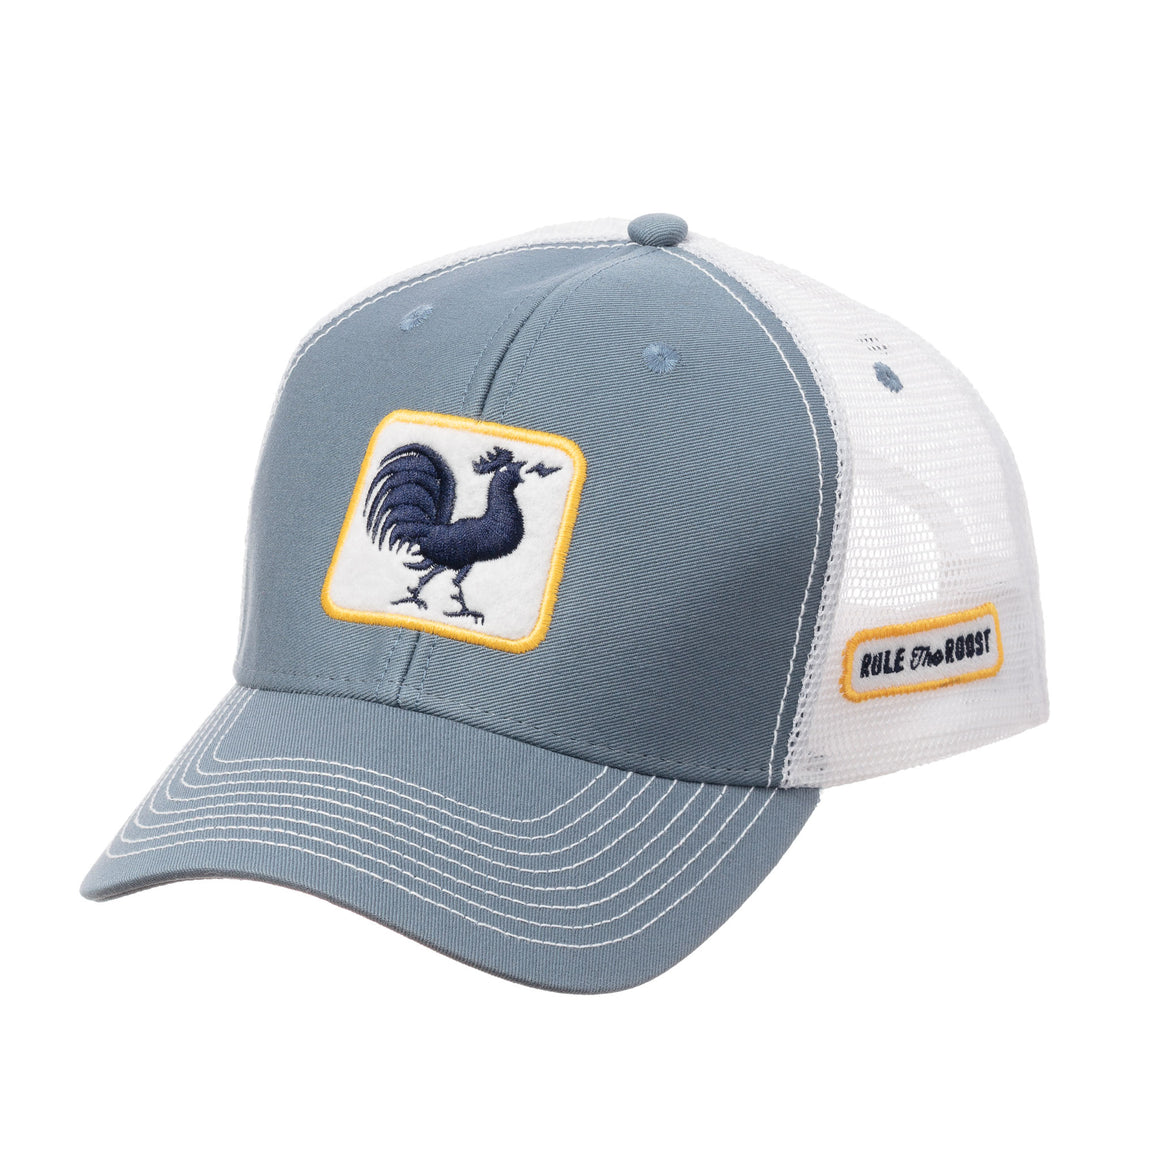 Kids Original Rooster Trucker Hat - Steel